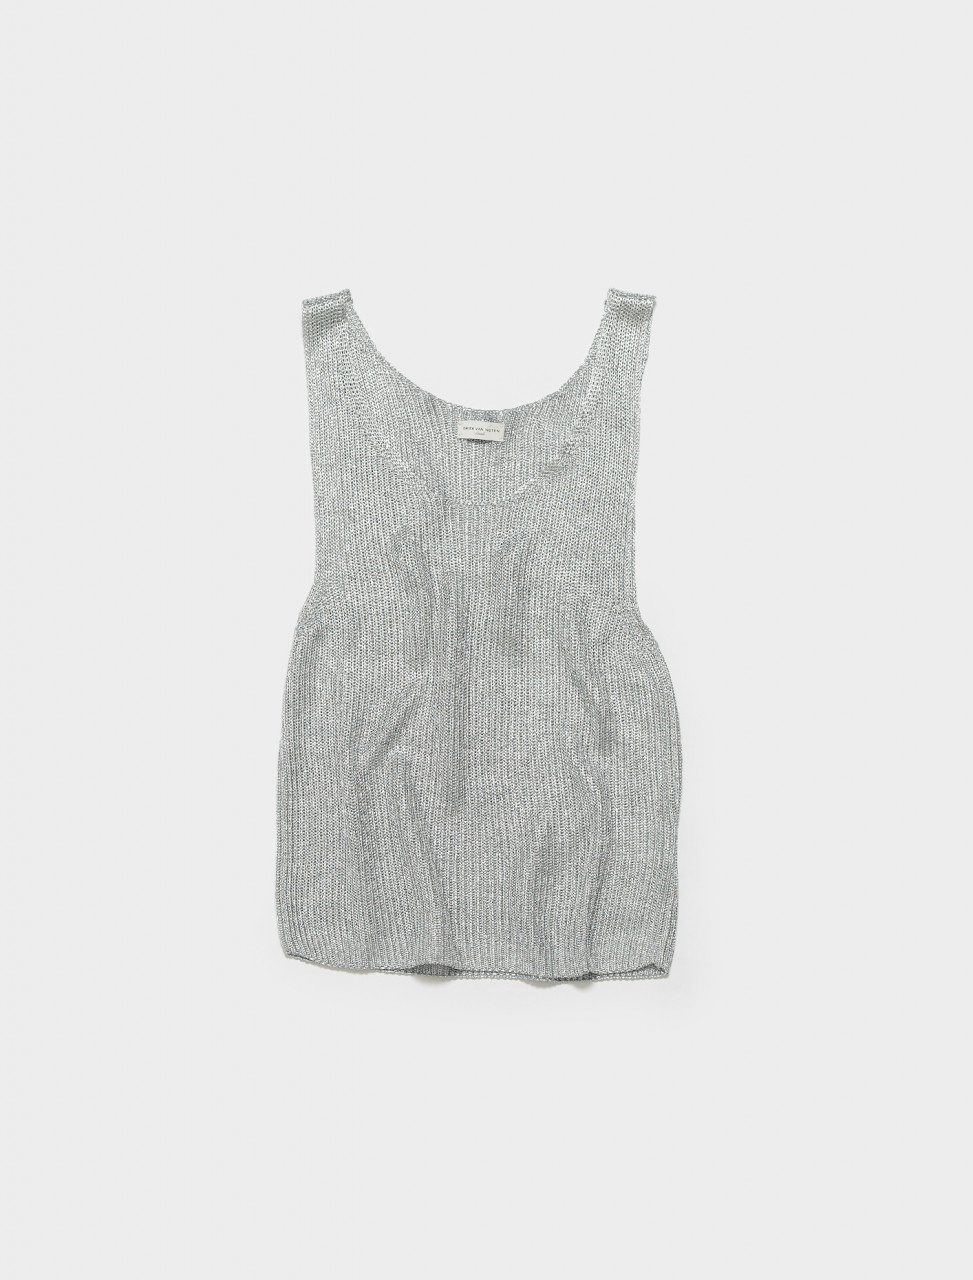 211-21222-2703-952 DRIES VAN NOTEN NATHAN TANK SILVER